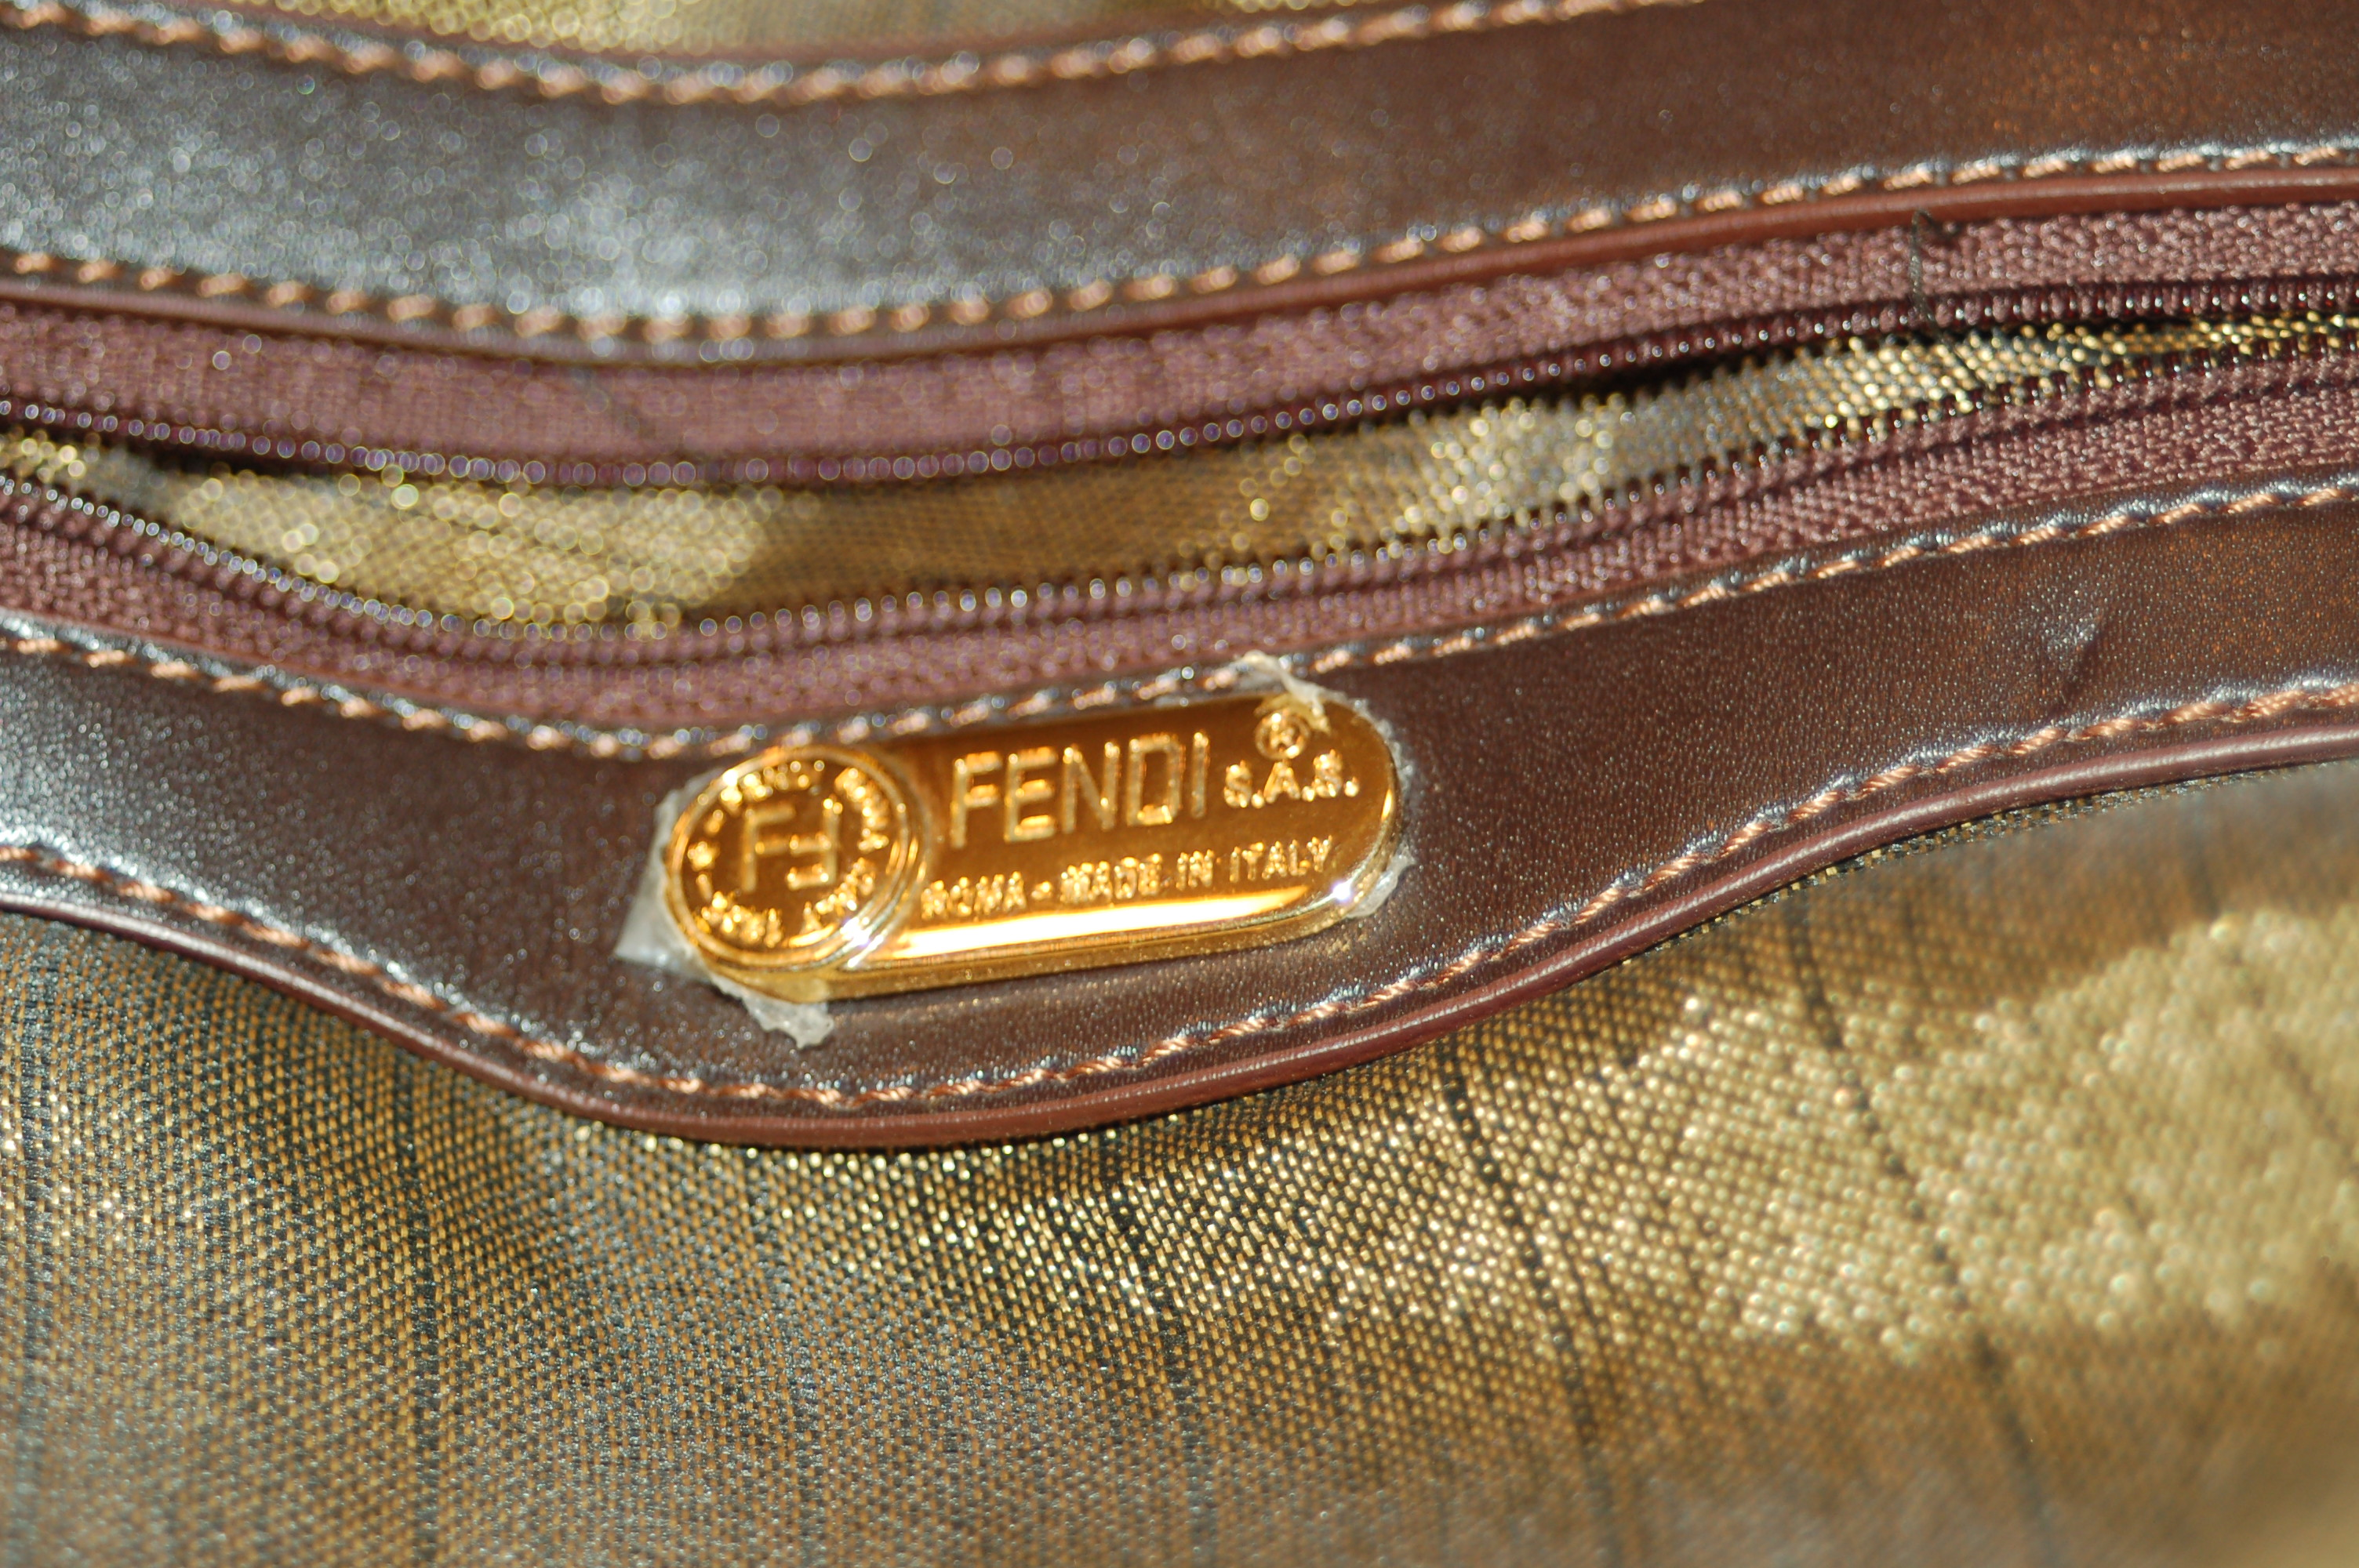 how to tell if fendi purse is real